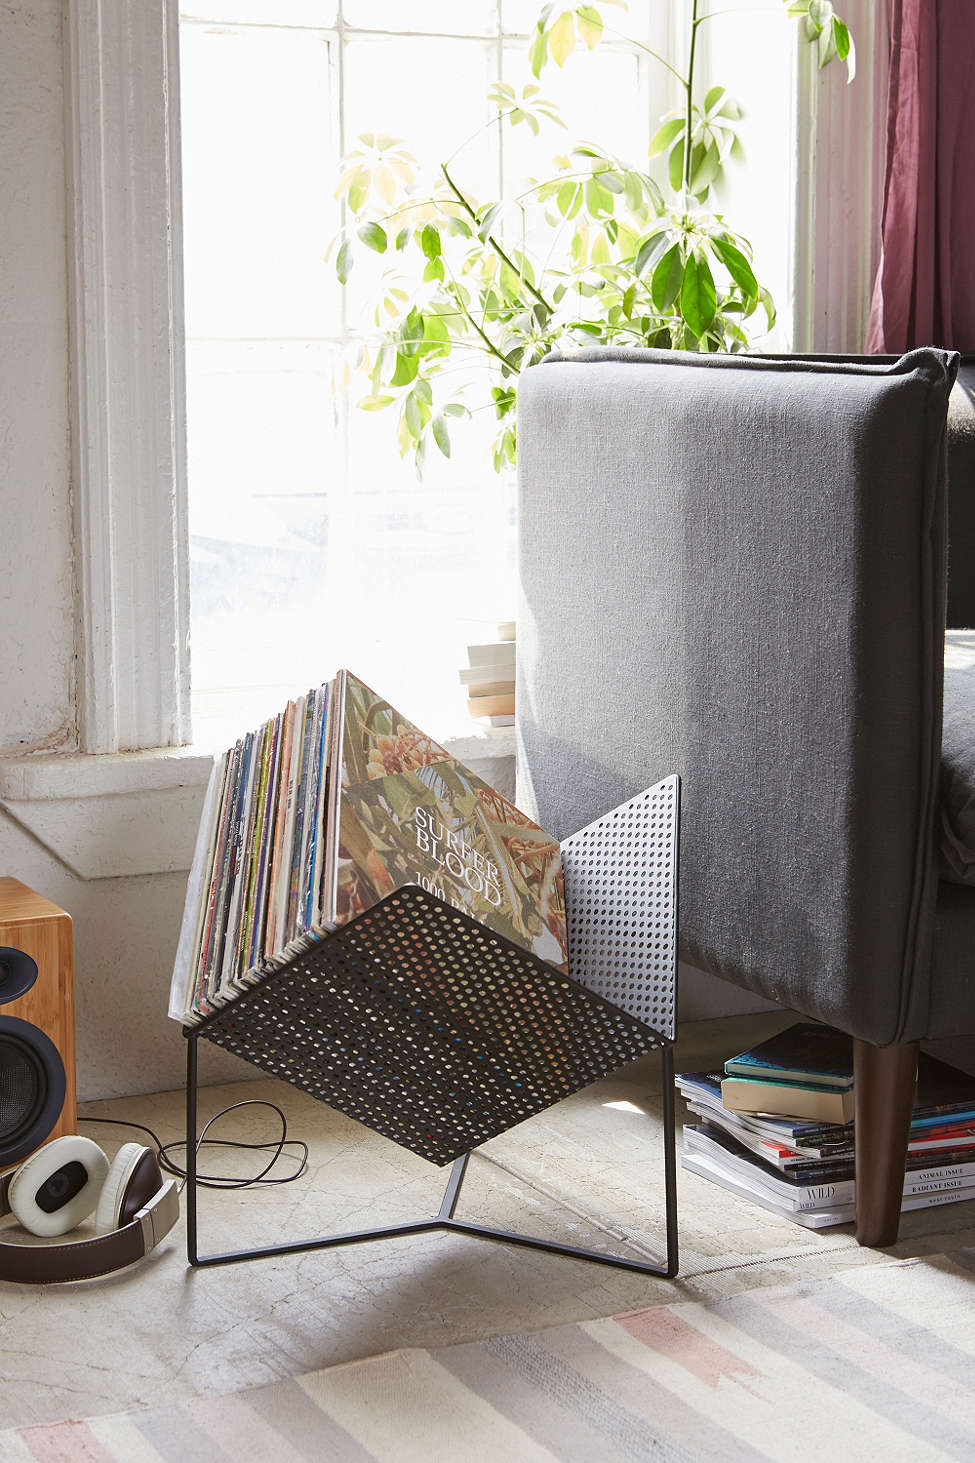 Ikea Media Unit Simple And Classy Ways To Store Your Vinyl Record Collection